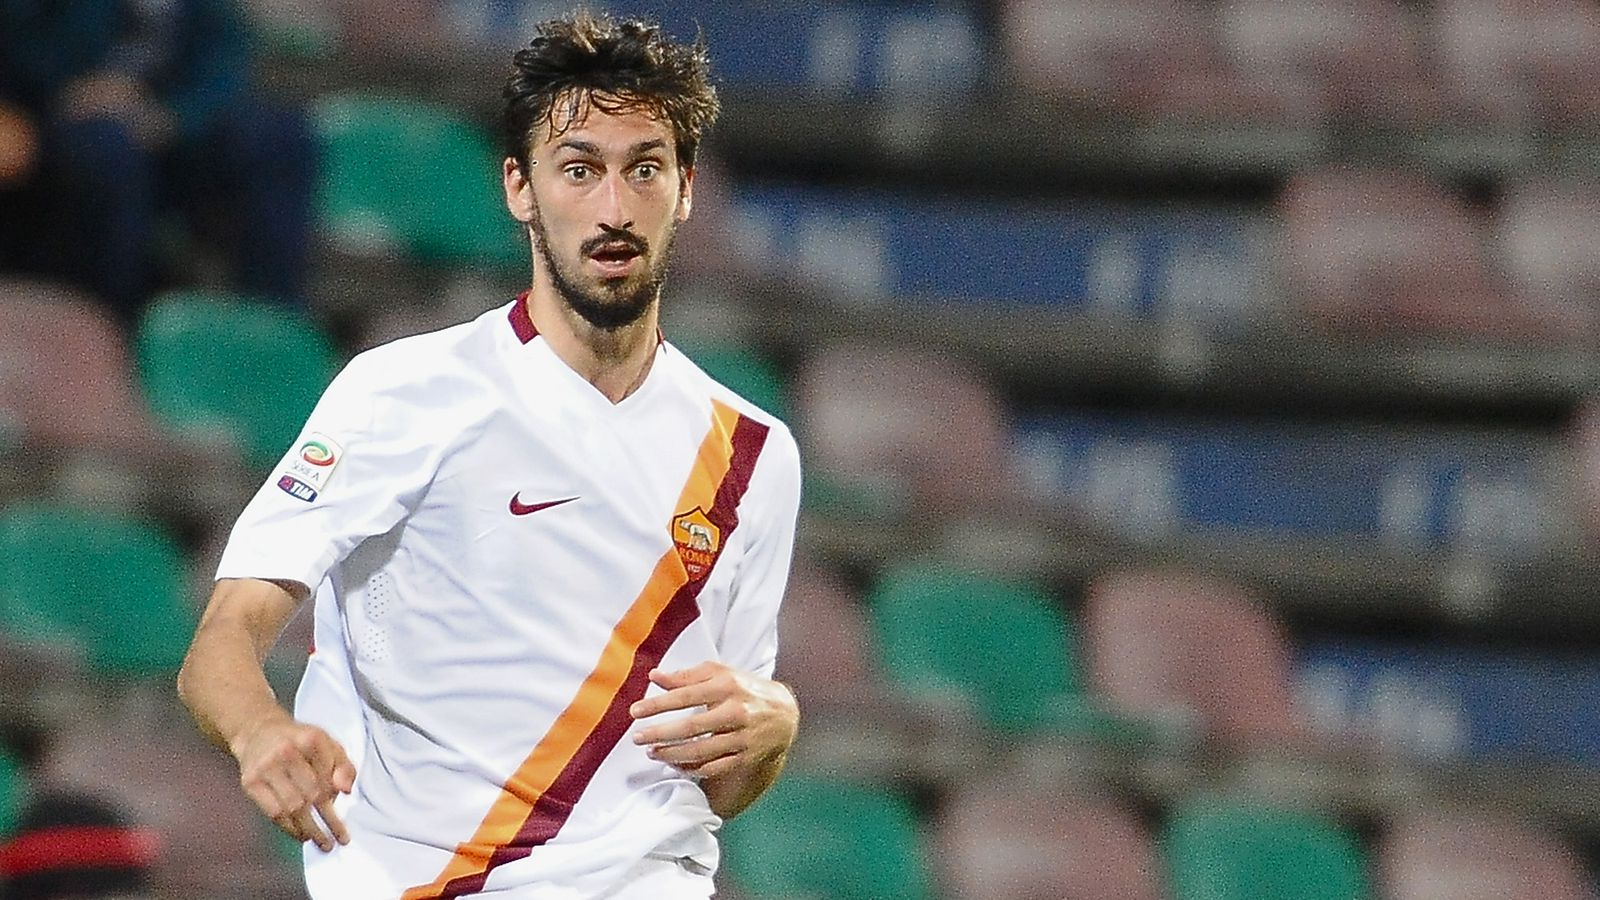 Davide Astori transferring to Napoli - The Siren's Song